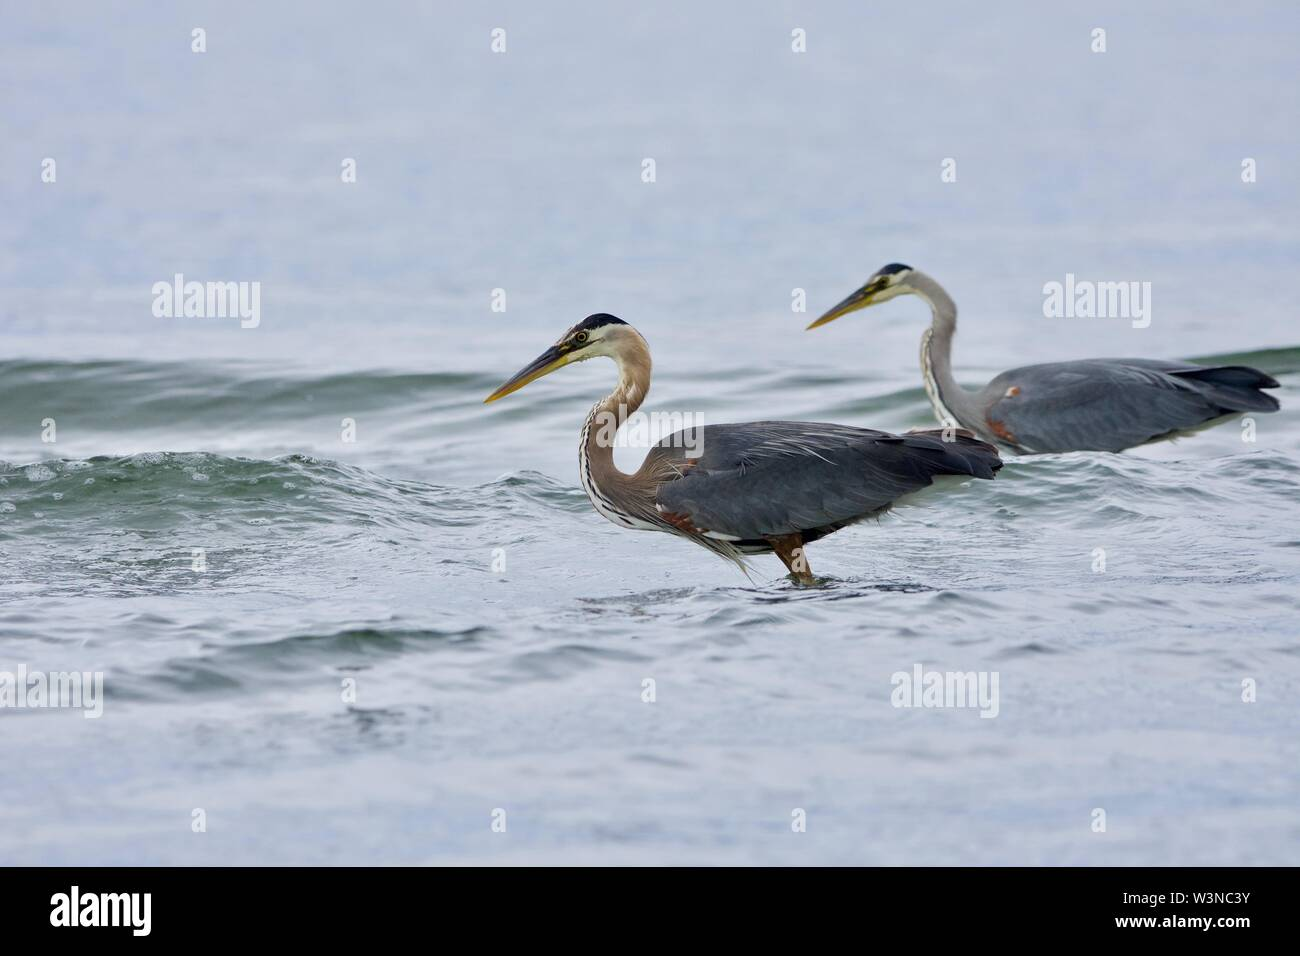 Two great blue herons fish in the waves near shore at Witty's Lagoon, Vancouver Island, British Columbia. - Stock Image